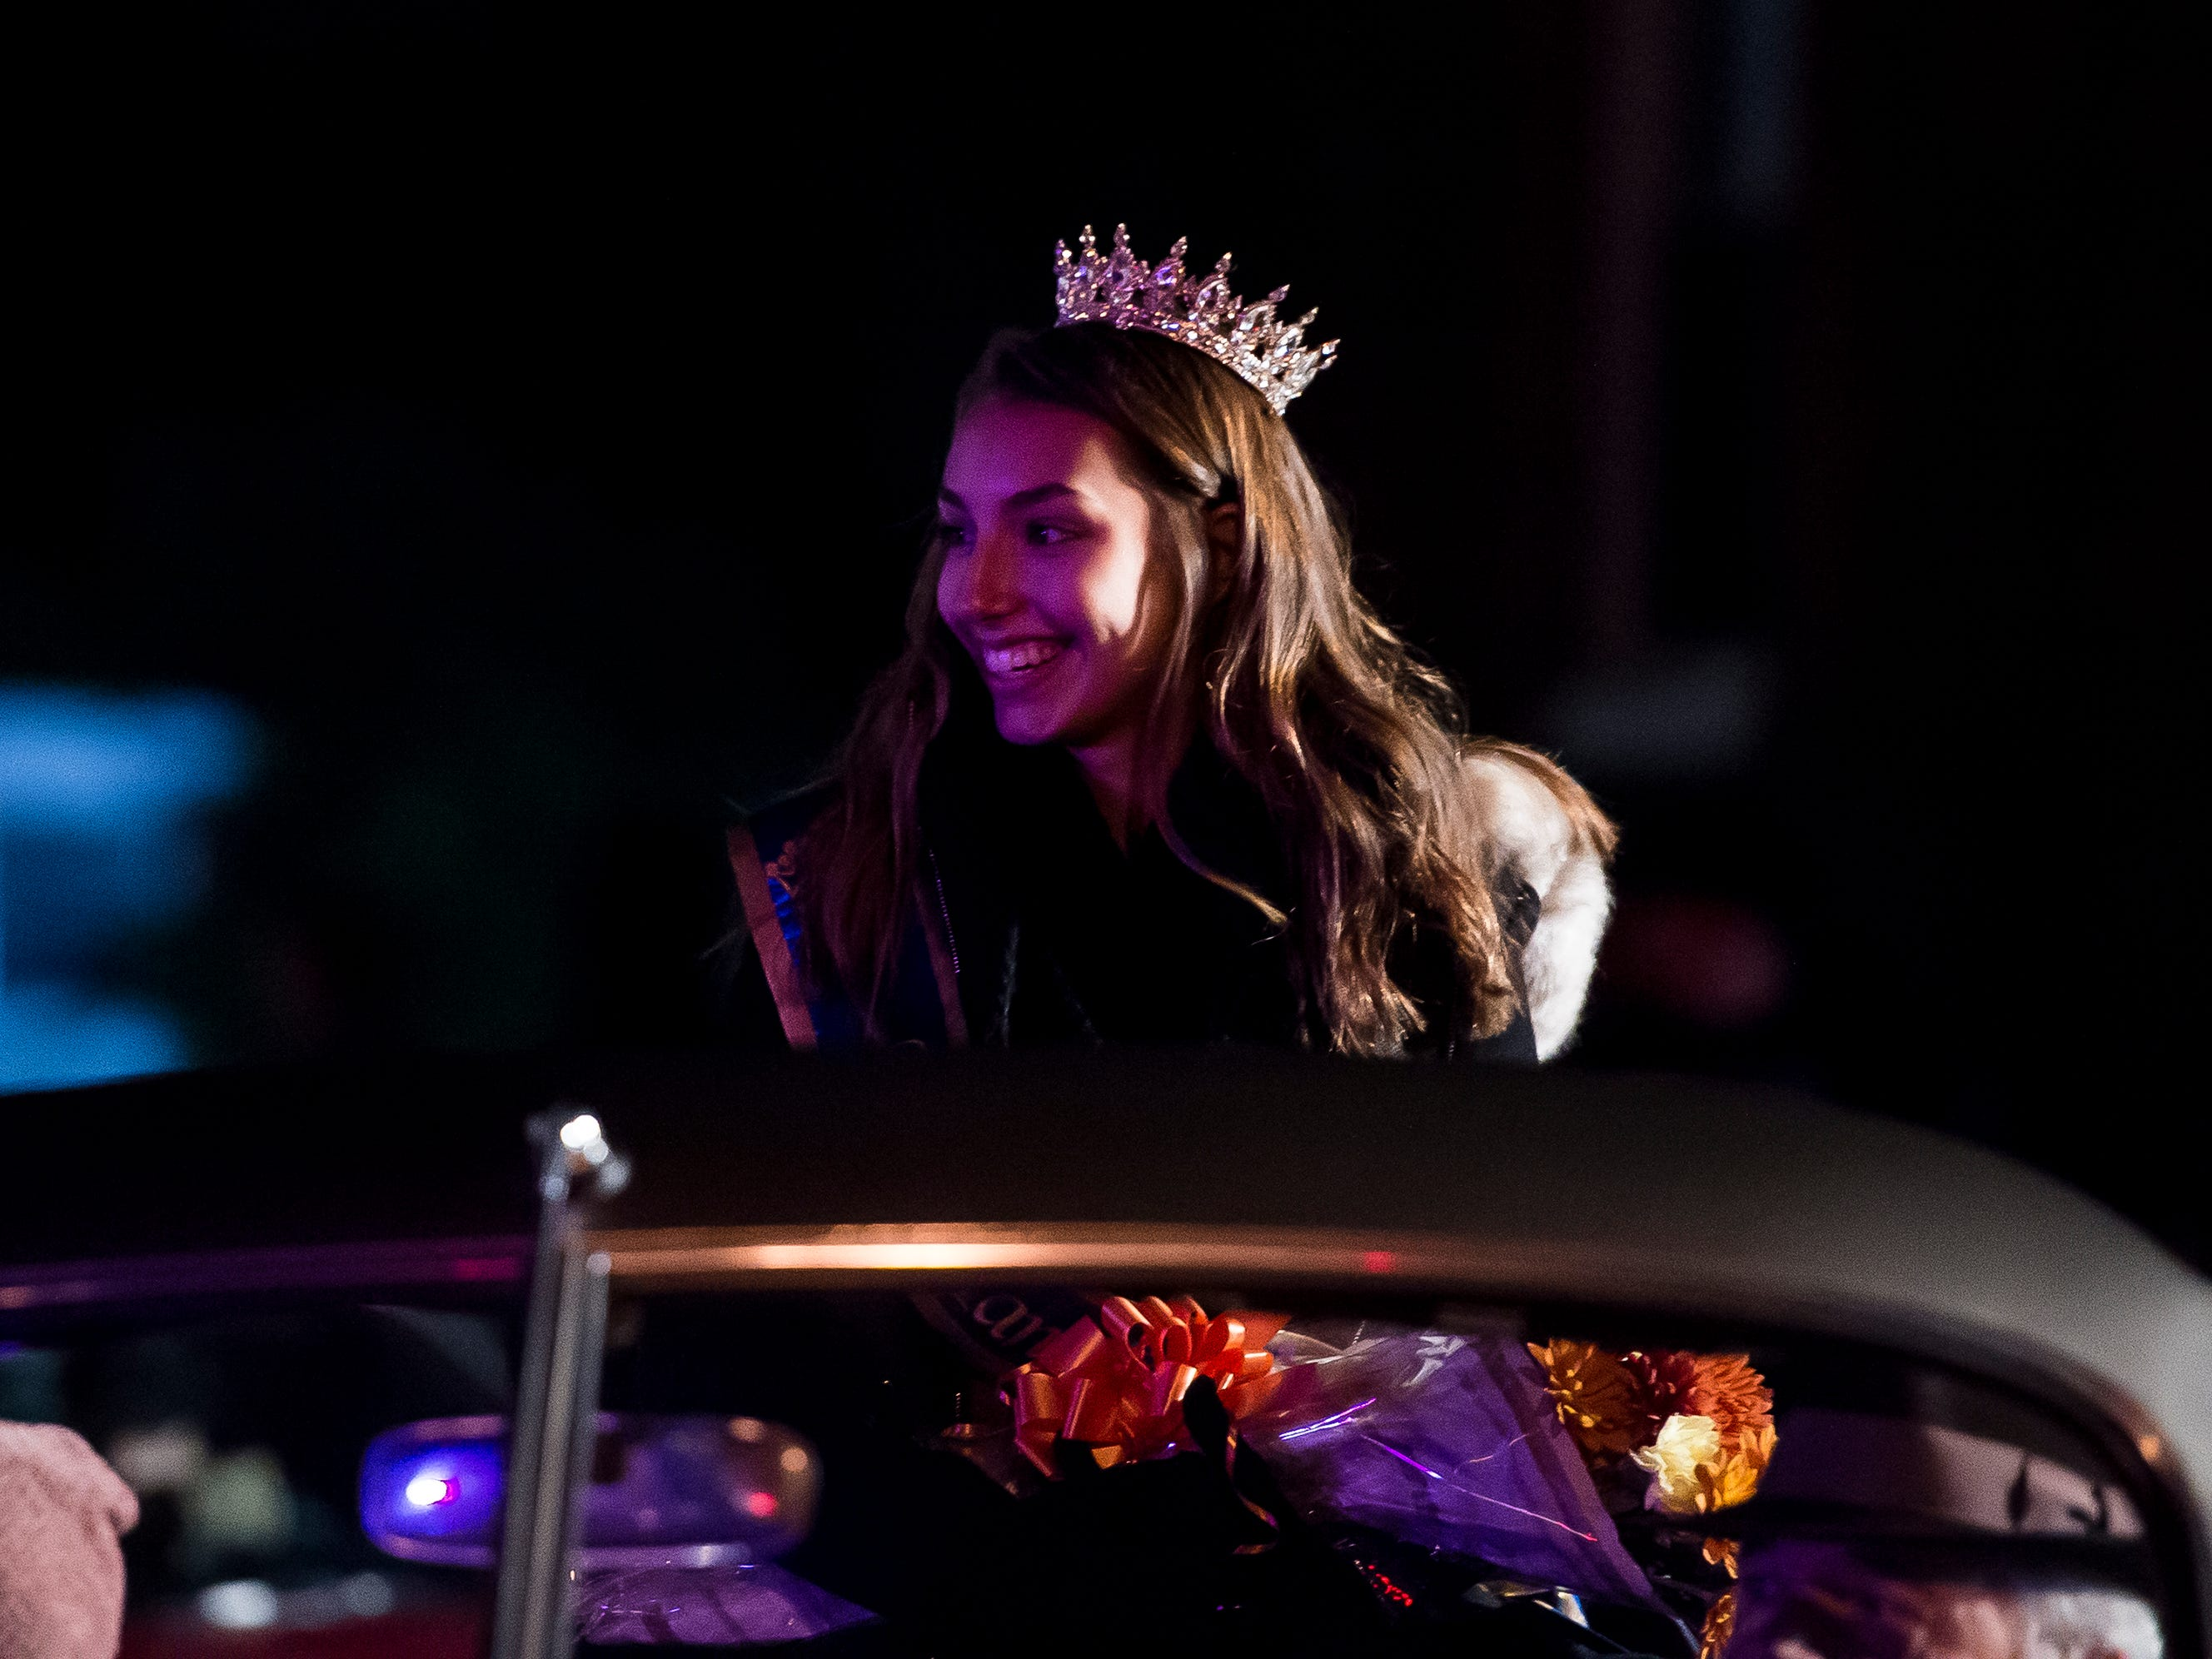 Miss Hanover Area 2018-2019, Madlyn Farley, rides in a vehicle during the 77th annual Hanover Halloween parade on Thursday, October 25, 2018.